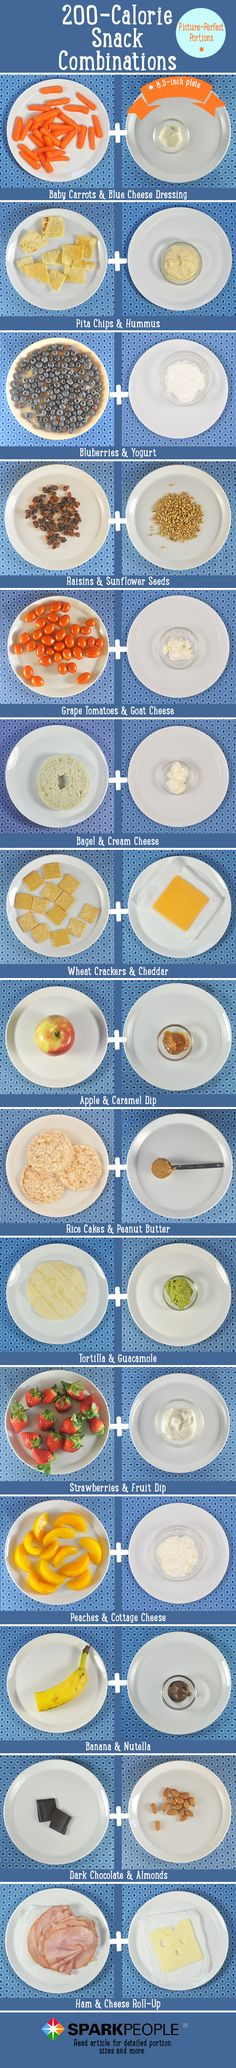 Portion Pictures of 15 Healthy 200-Calorie Snack Combos. Click for exact portion sizes. | via @SparkPeople #food #diet #nutrition #healthy